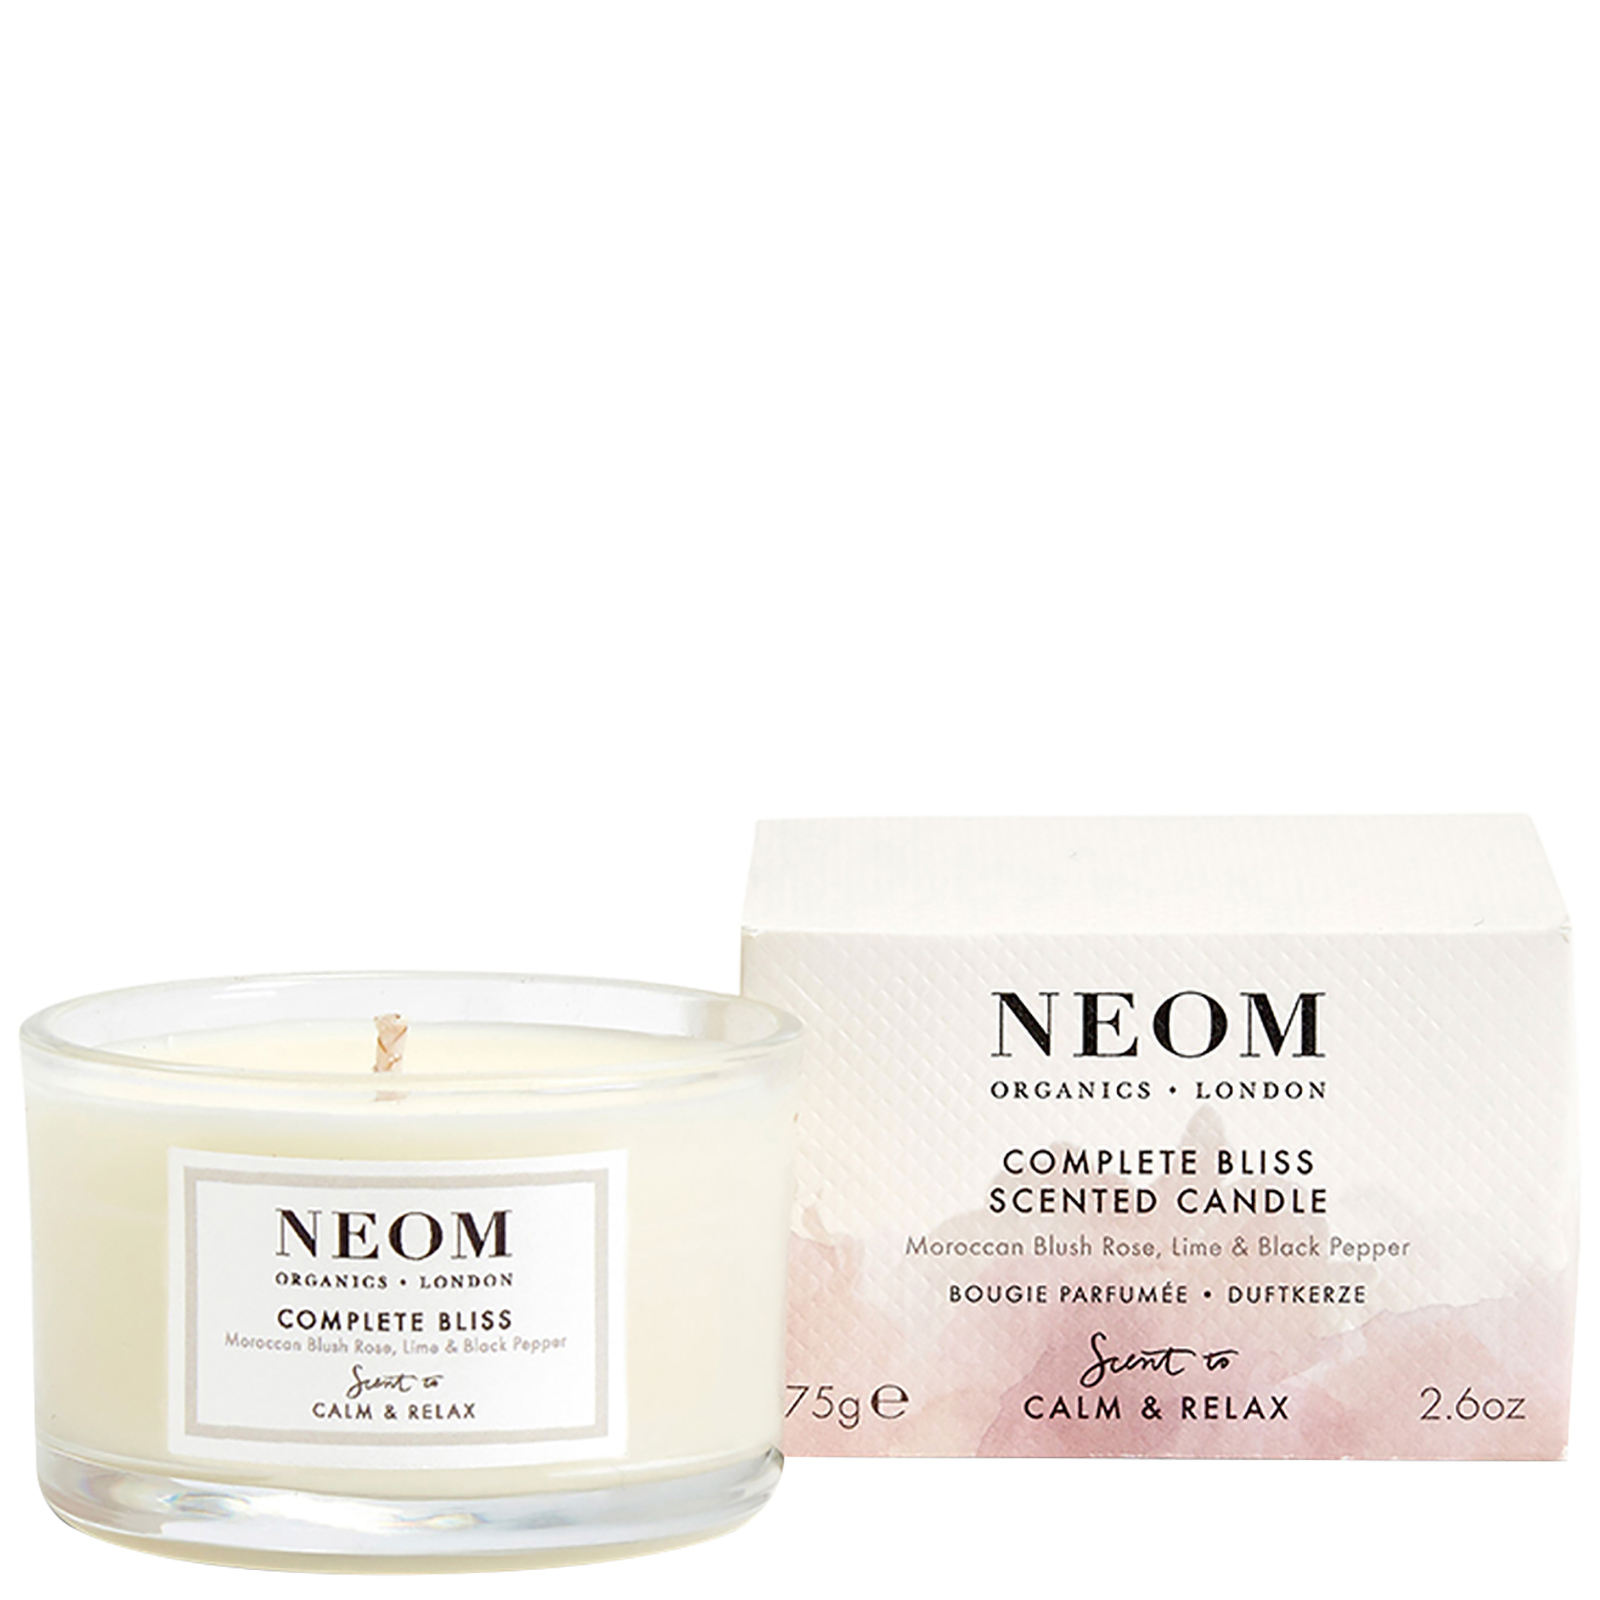 Neom Organics London Scent To Calm & Relax Complete Bliss Scented Candle (Travel) 75g